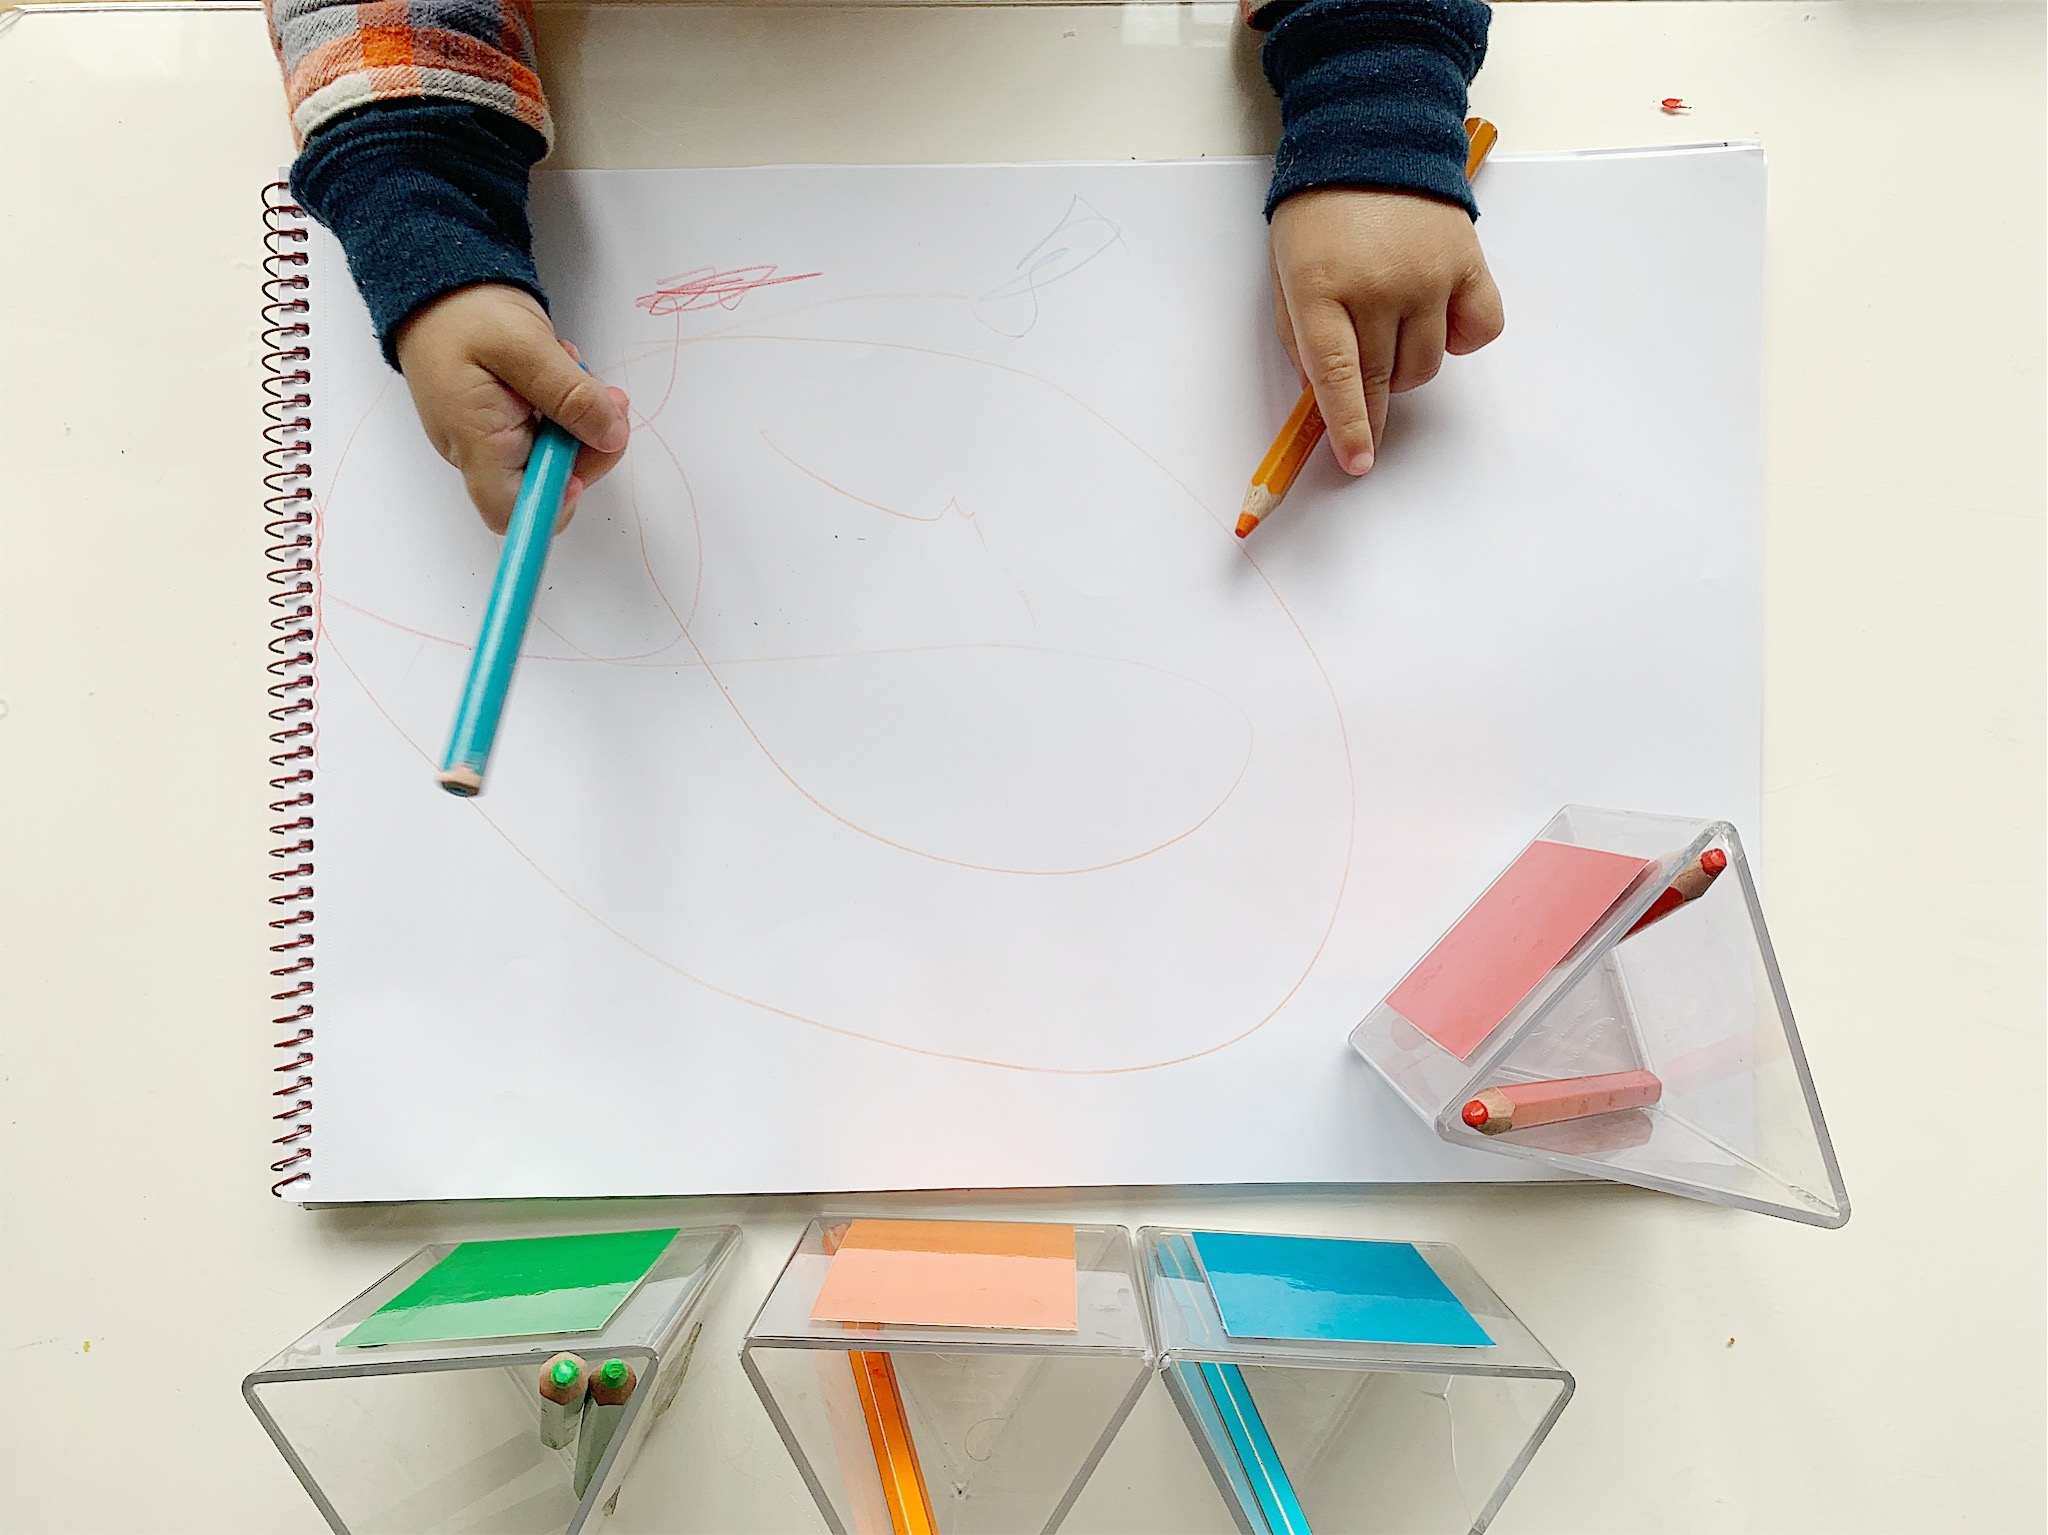 A Montessori approach to Toddler Creativity